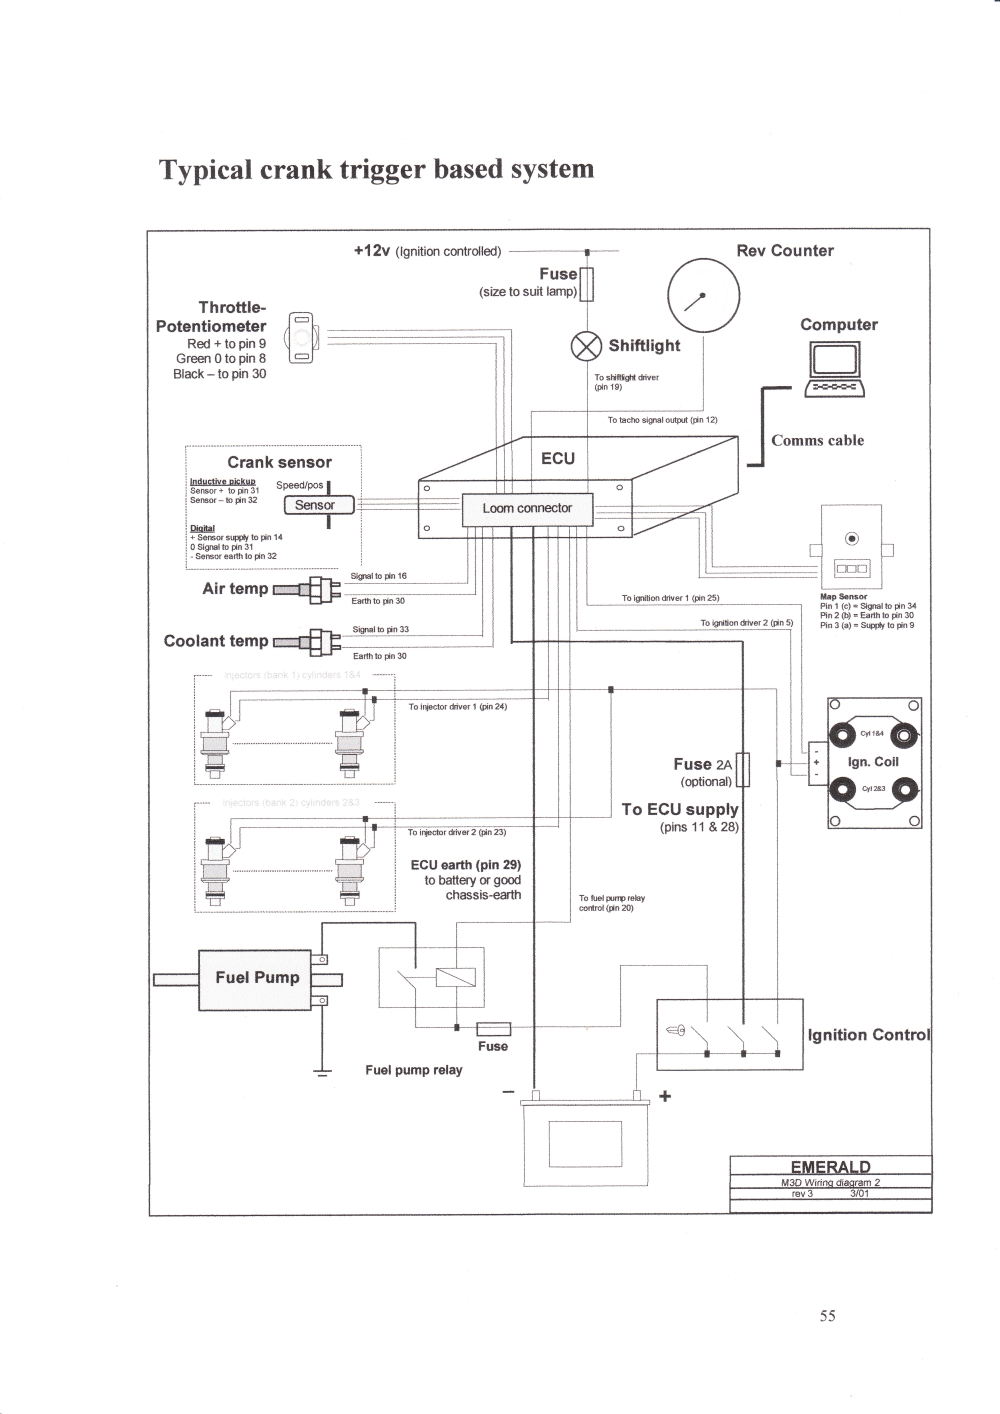 Winnebago Motorhomes 2005 Wiring Diagram on jayco rv plumbing diagram